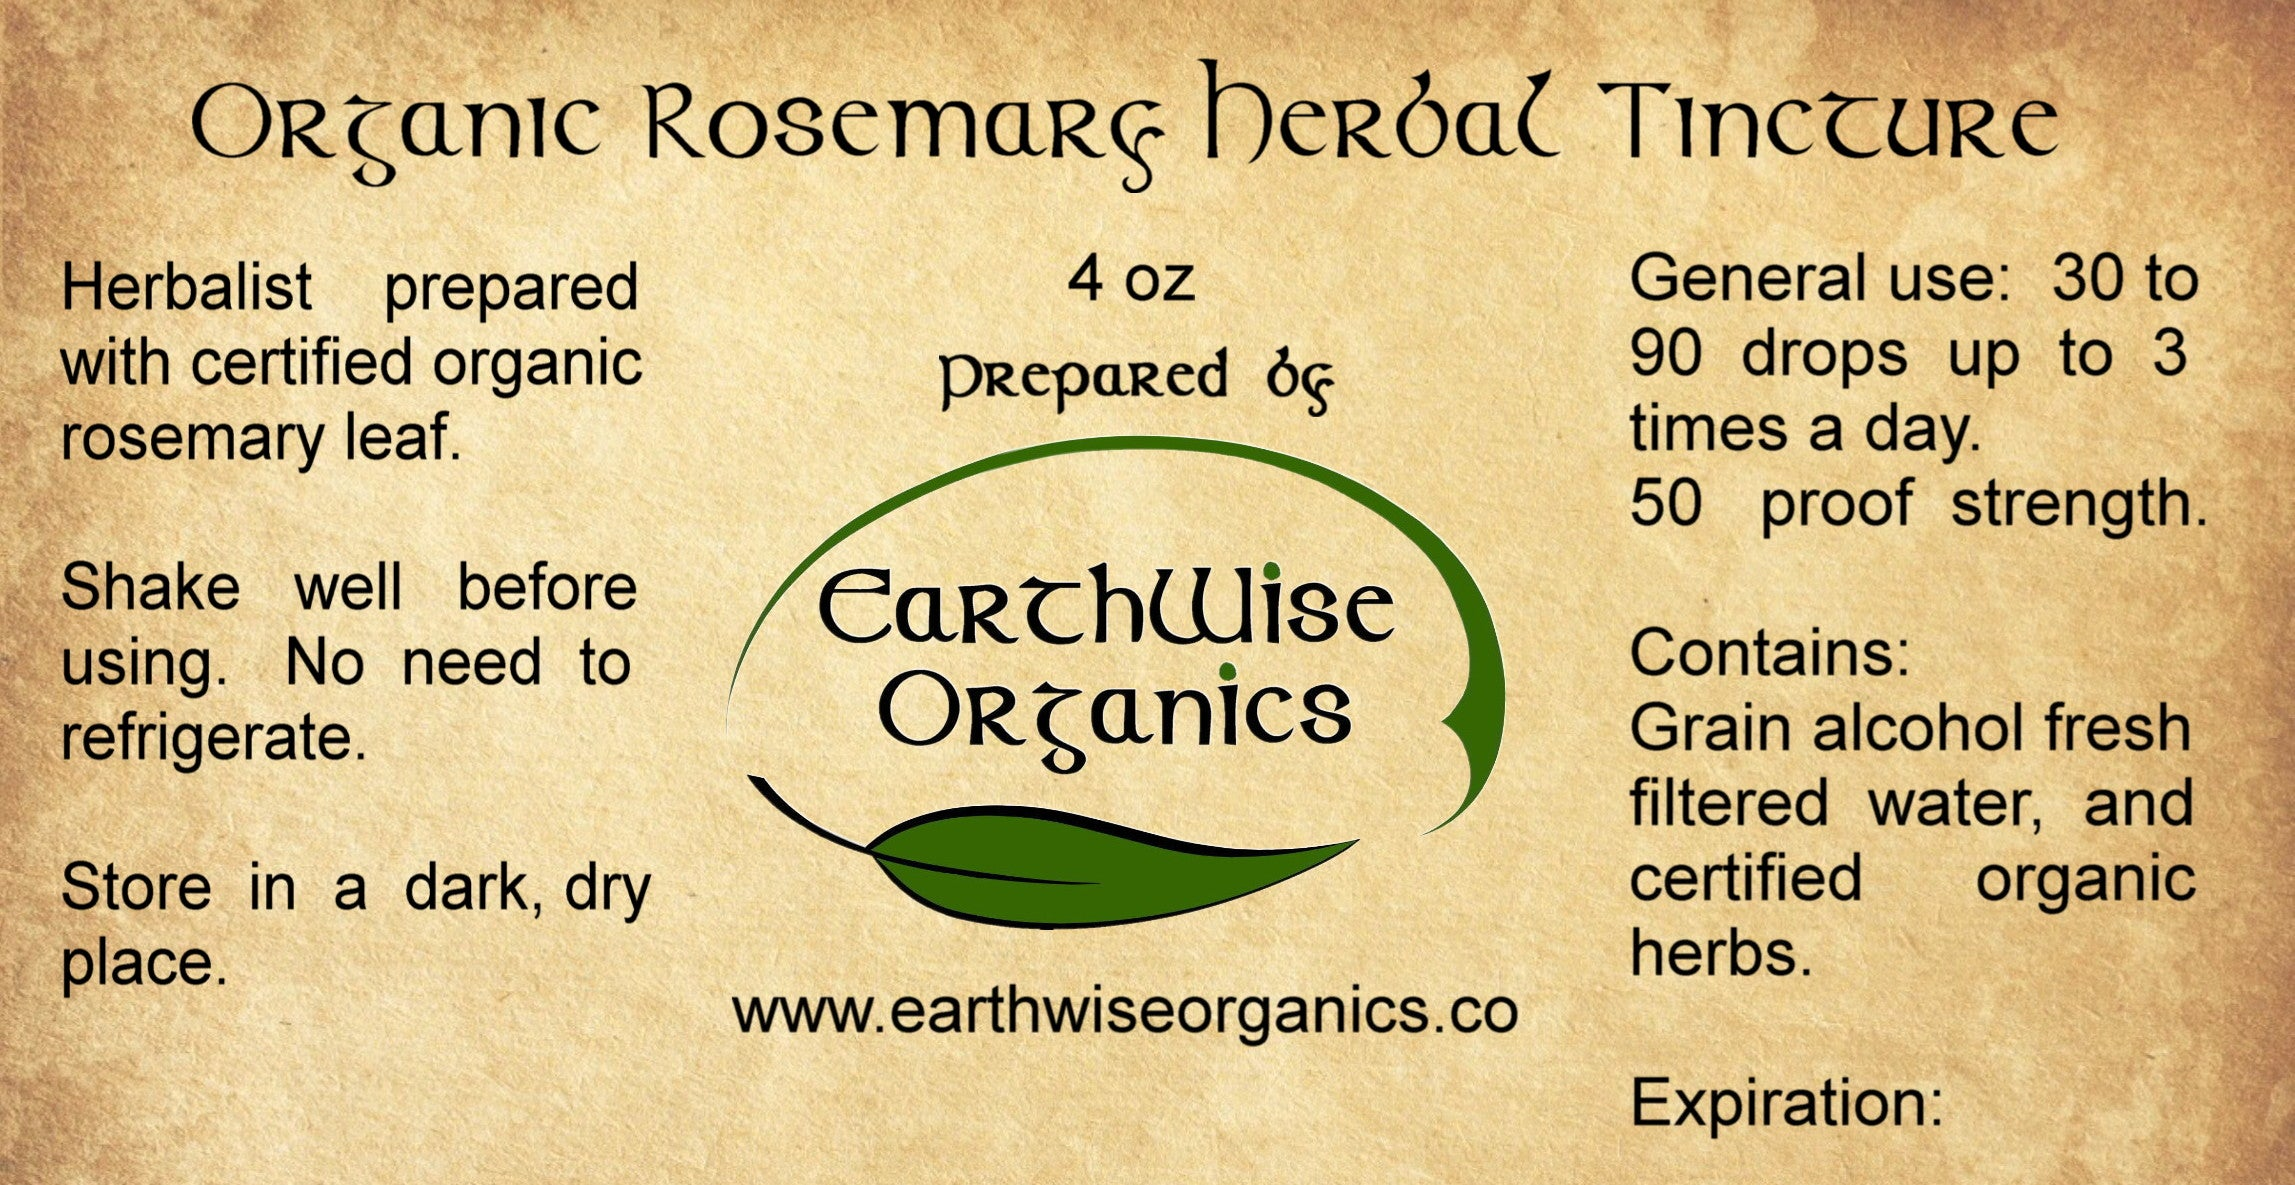 rosemary organic herbal tincture label